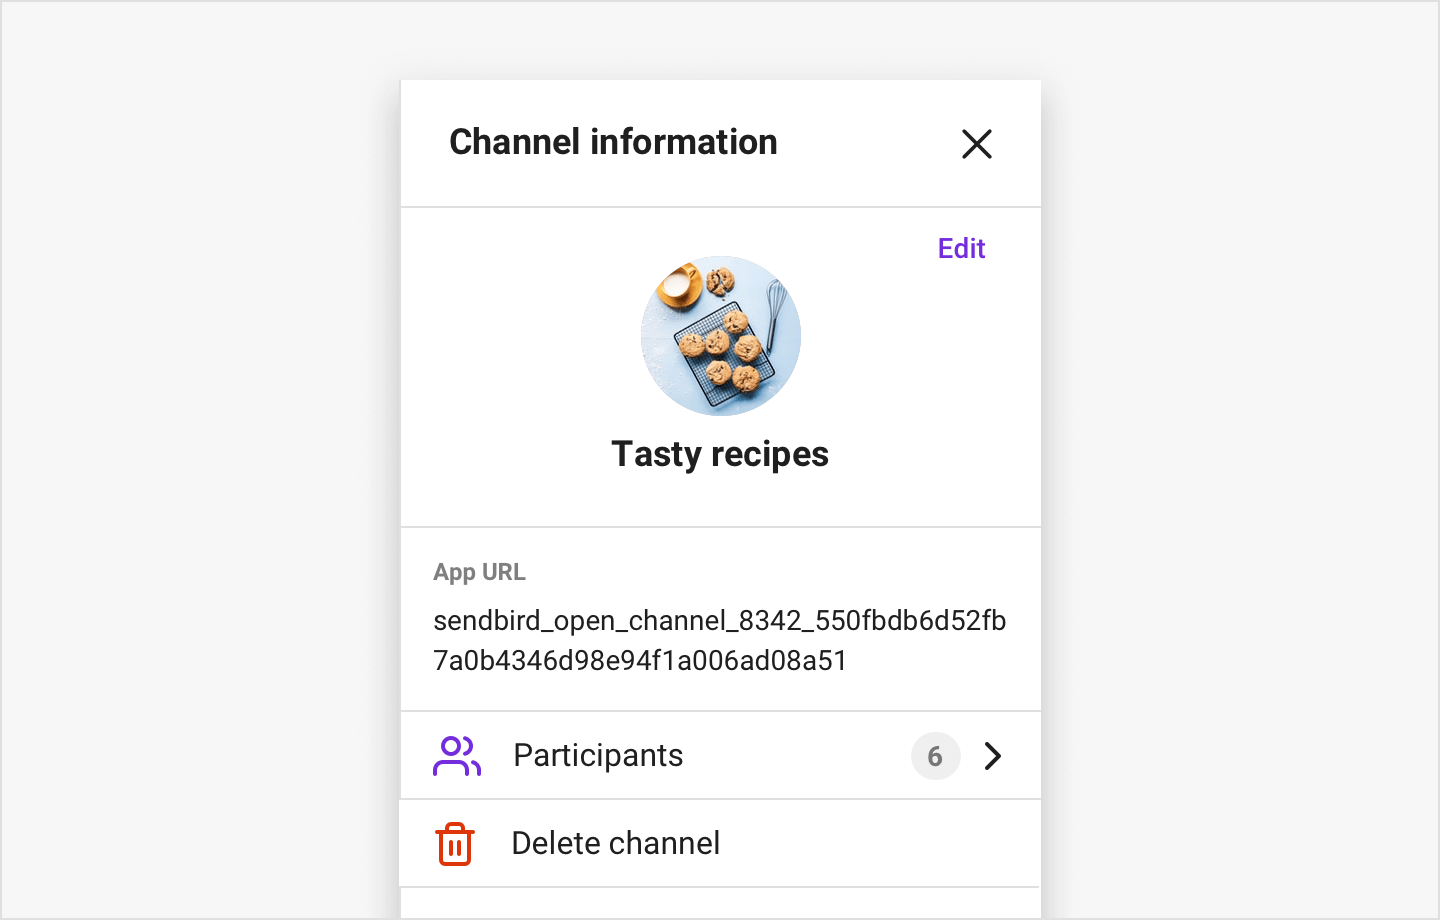 Image|OpenChannelSettings shows channel information and allows you to edit it.